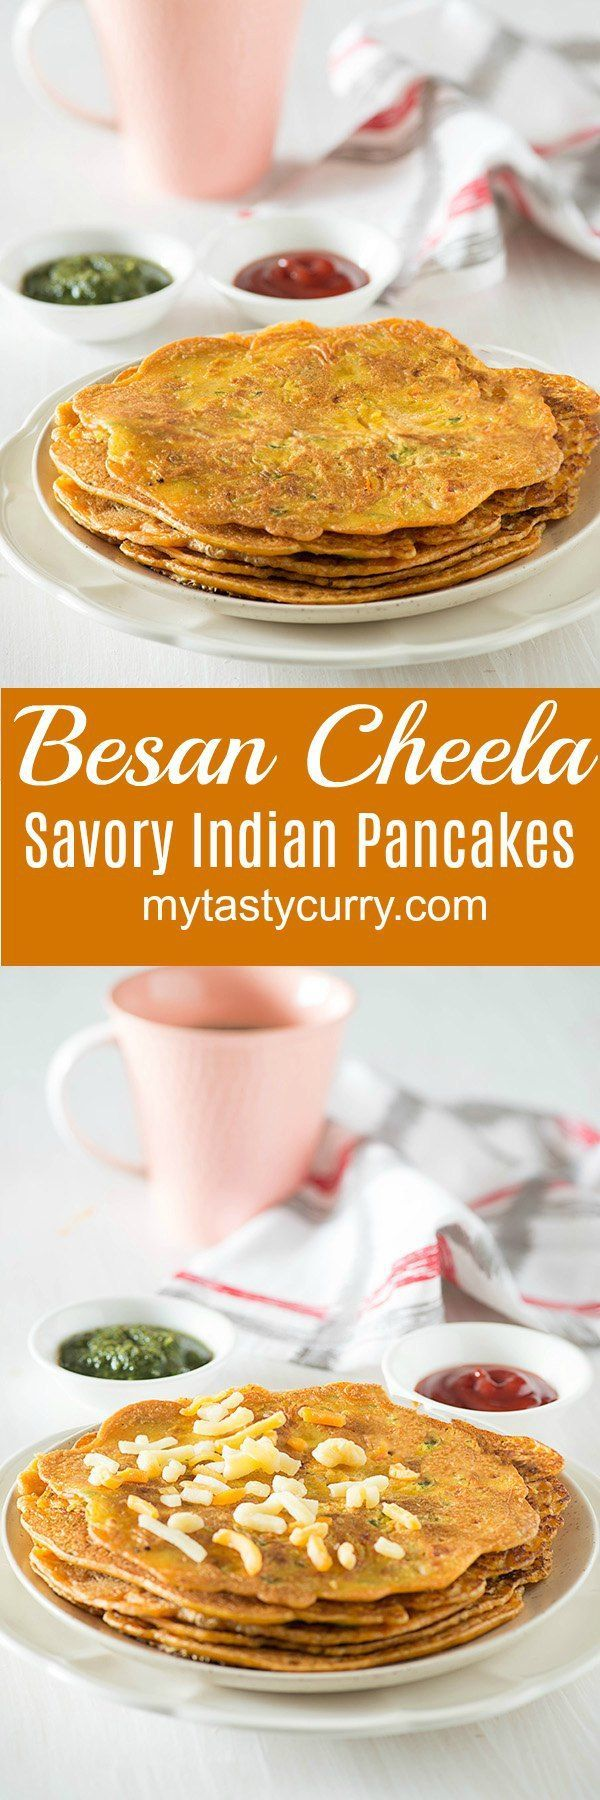 Besan Cheela is tasty and healthy Indian breakfast recipe made with gram flour or chickpeas flour. It is gluten-free, vegan and tasty breakfast option.